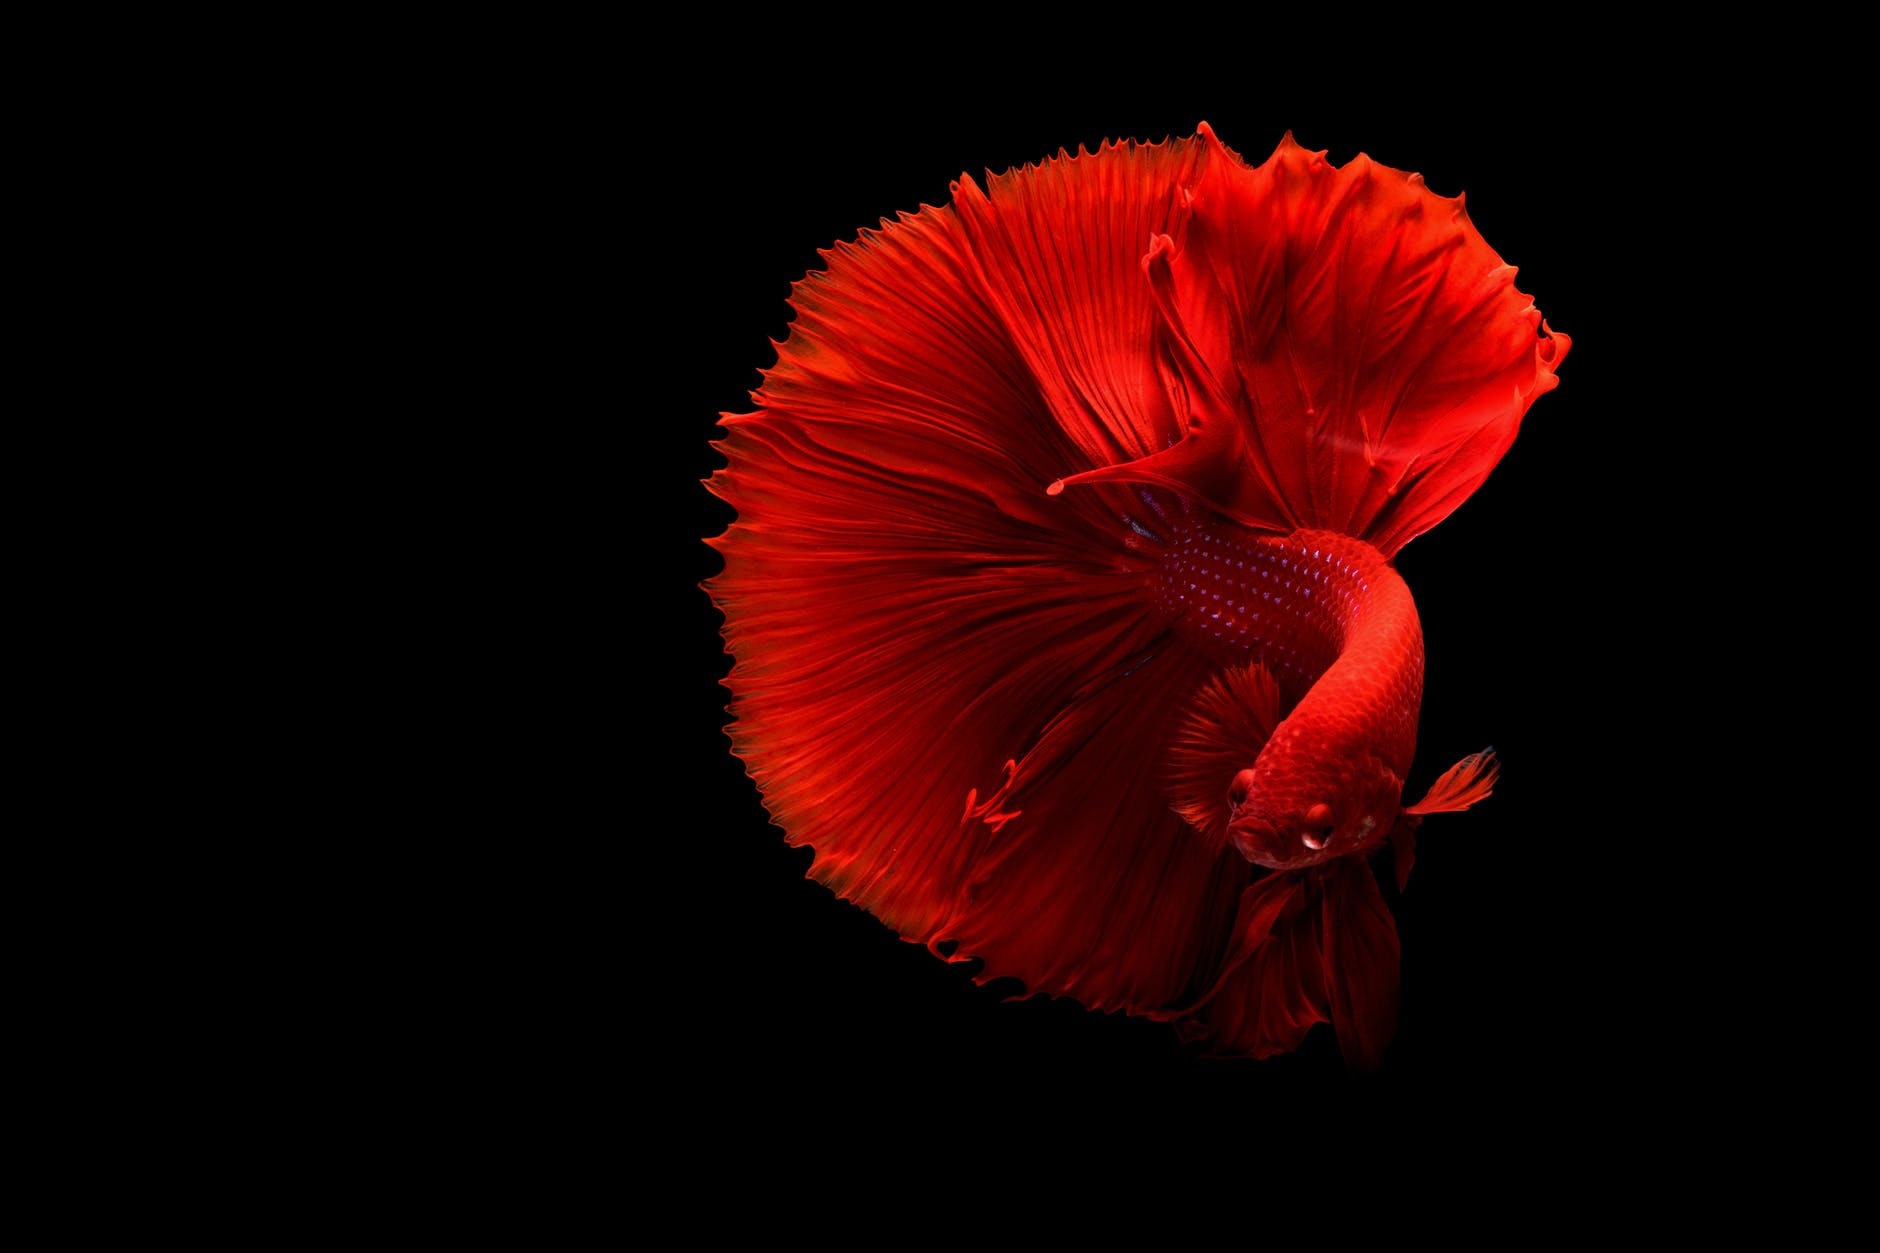 close up of a red siamese fighting fish